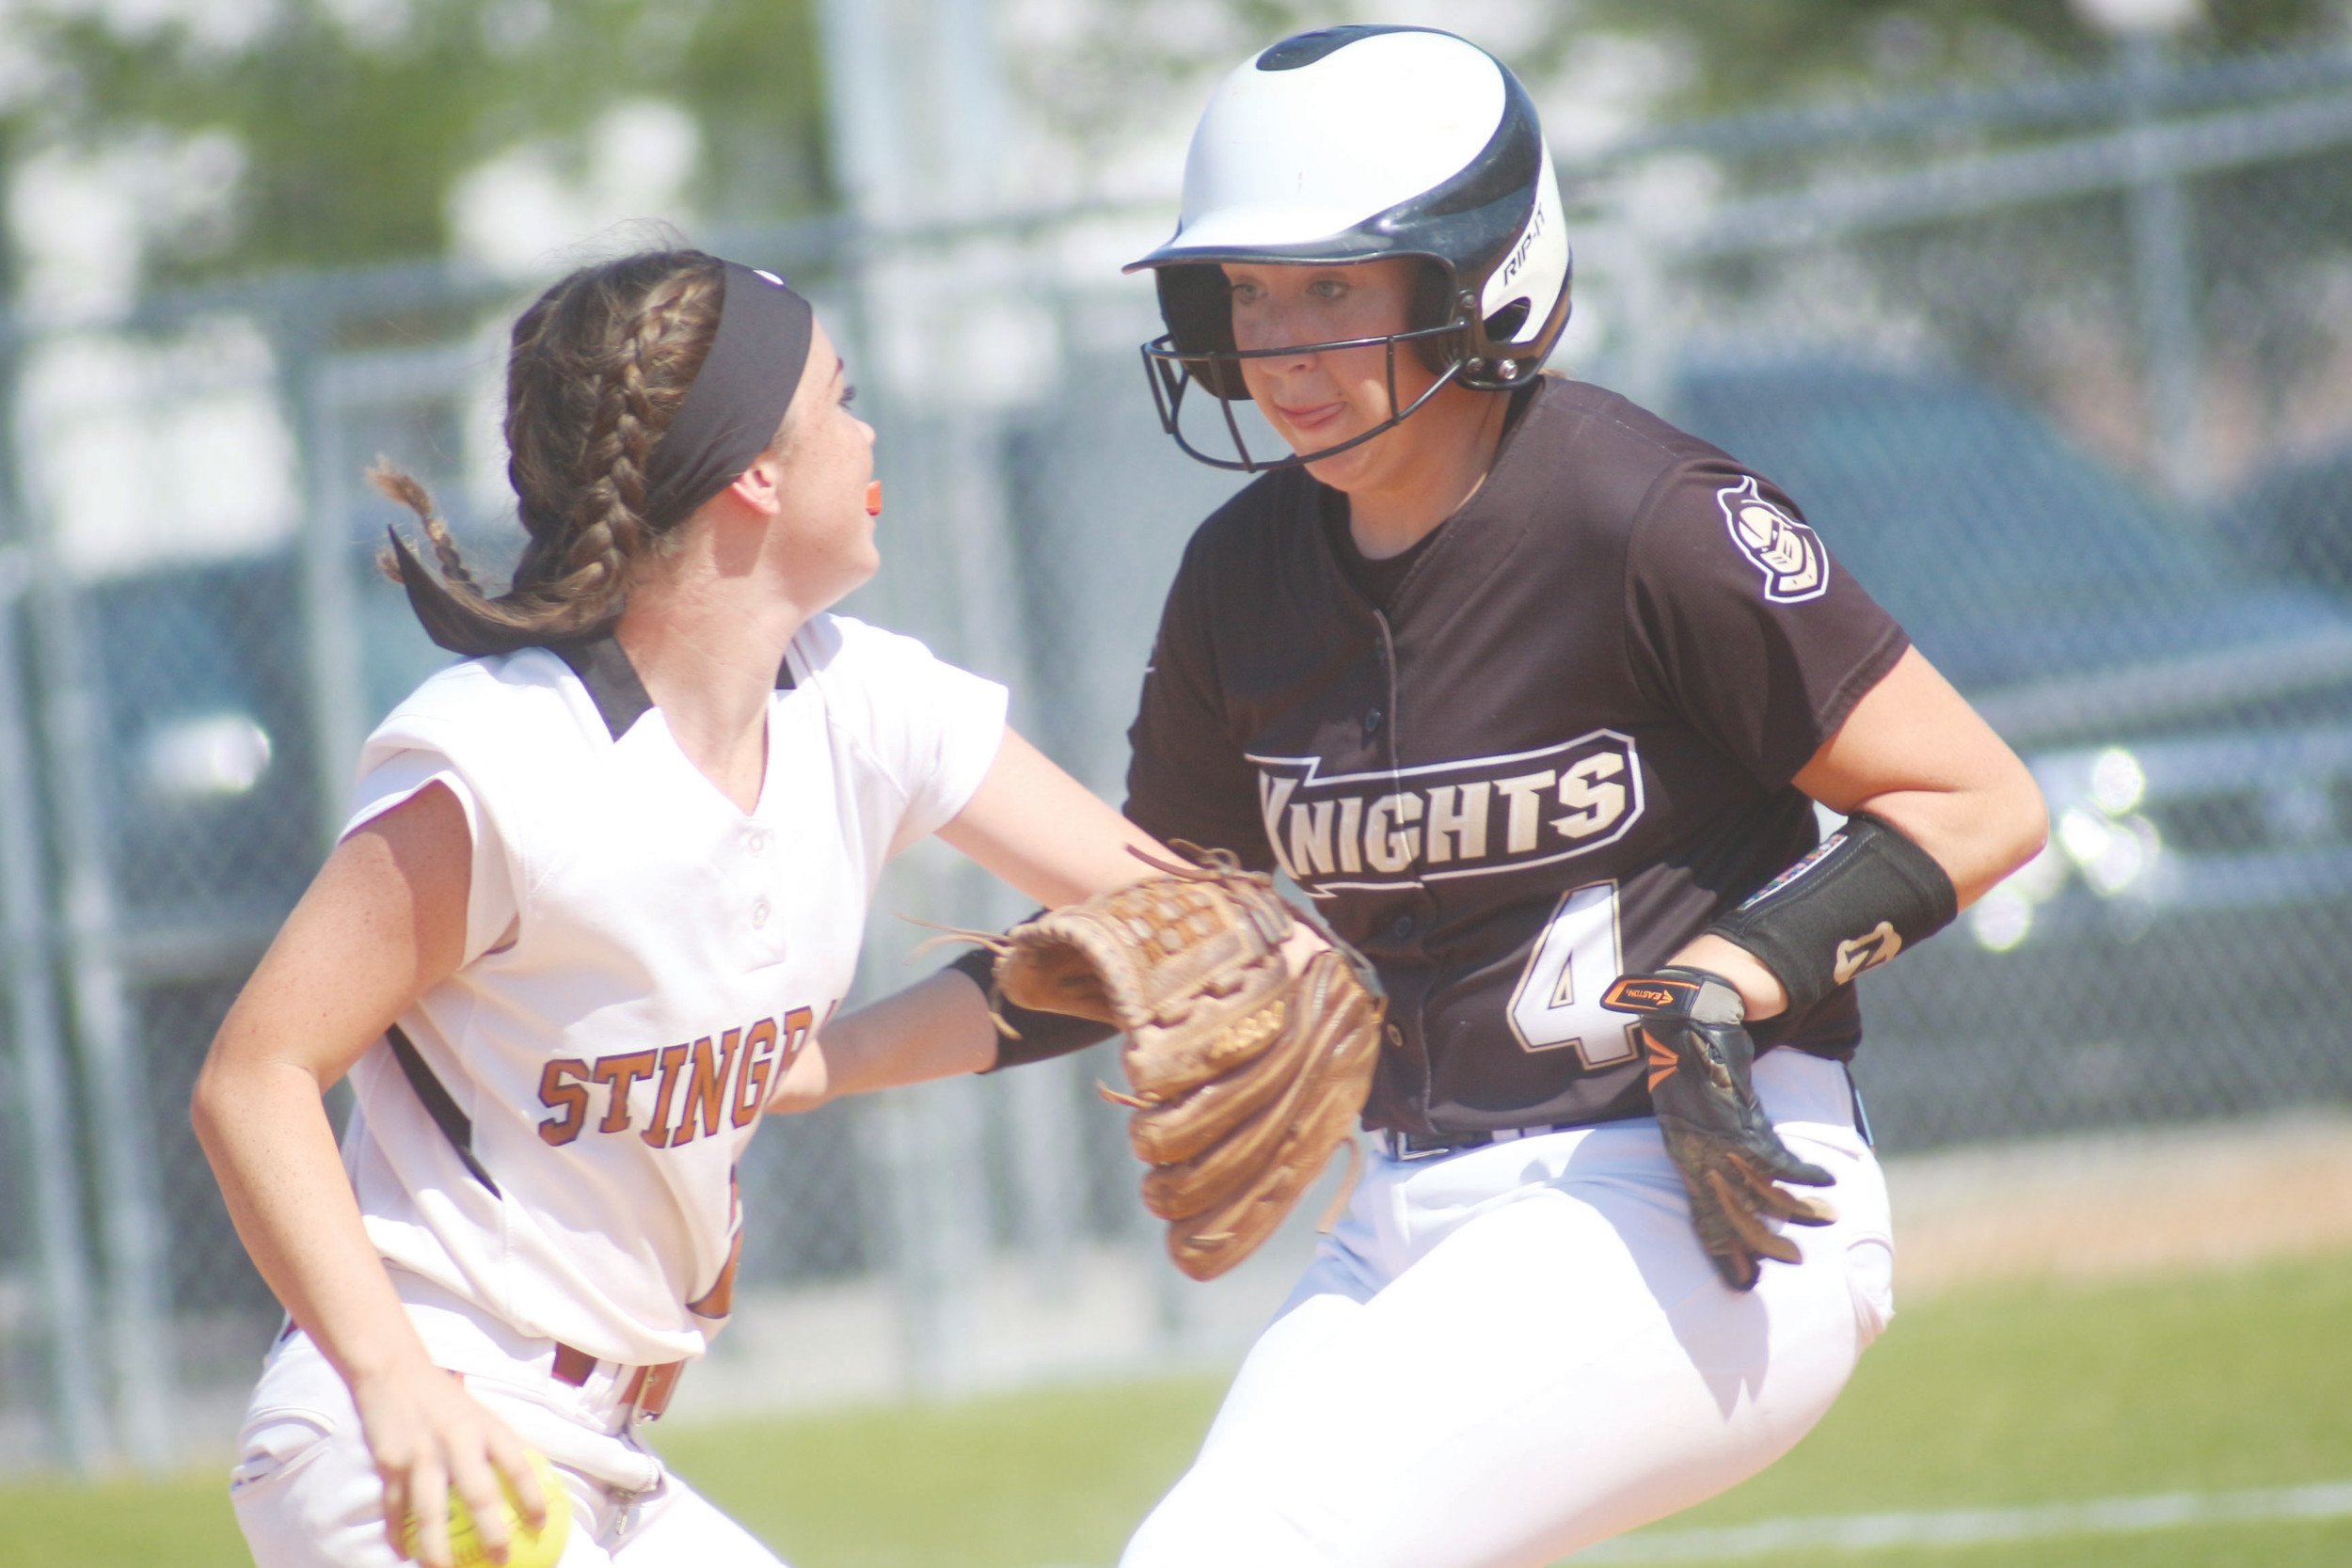 Oakleaf hitter Rebecca Koskey is high on-base hitter for Knights.